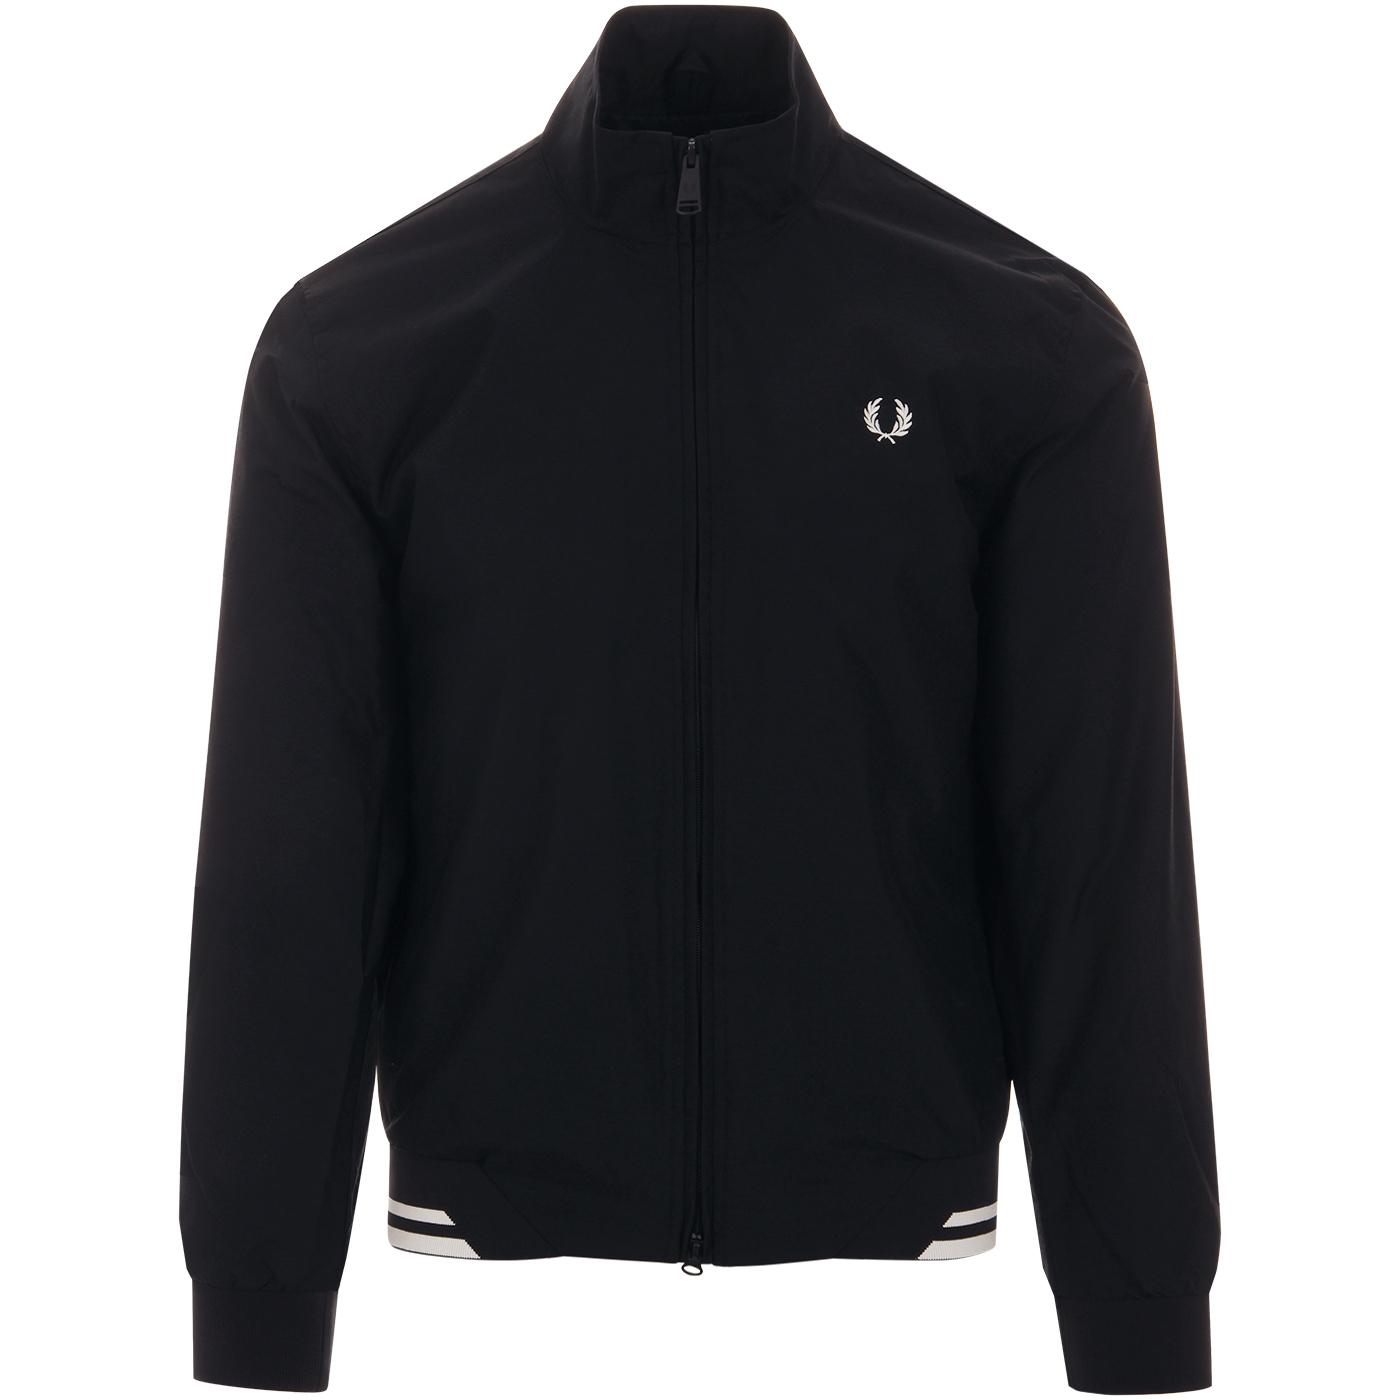 Brentham FRED PERRY Tipped Harrington Jacket NAVY